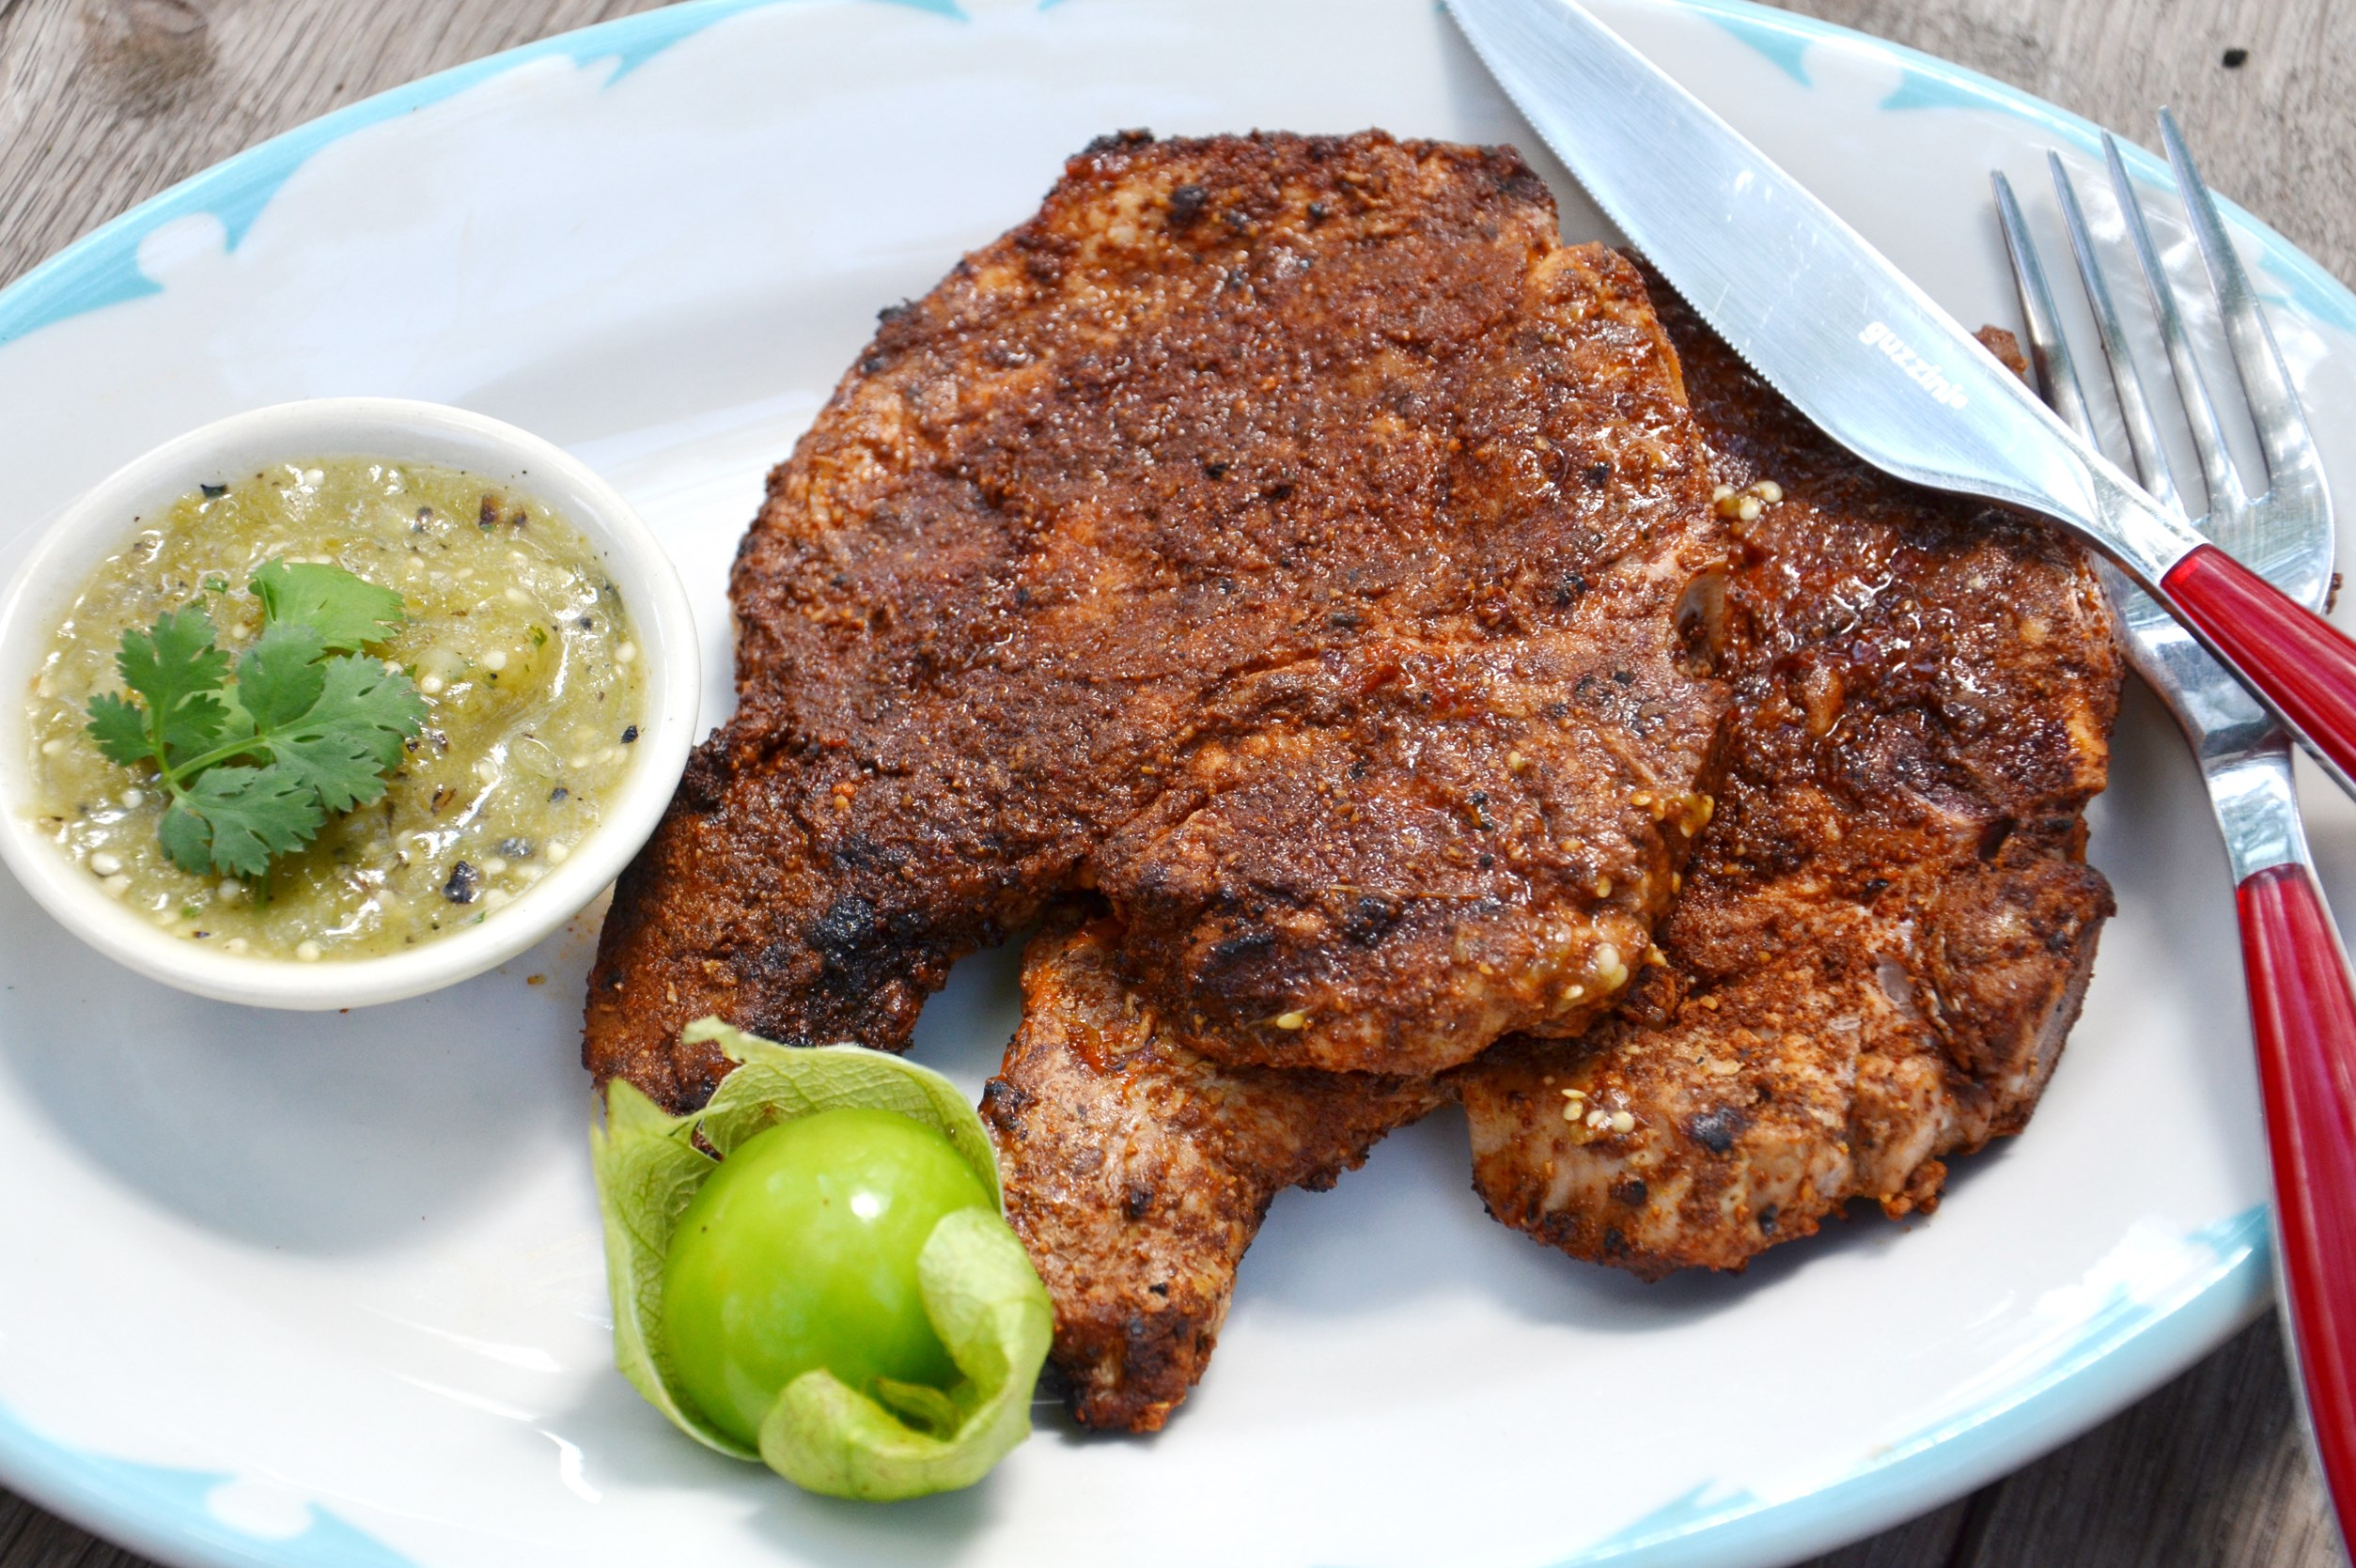 One Good Recipe: Grilled Chili-Rubbed Pork Chops